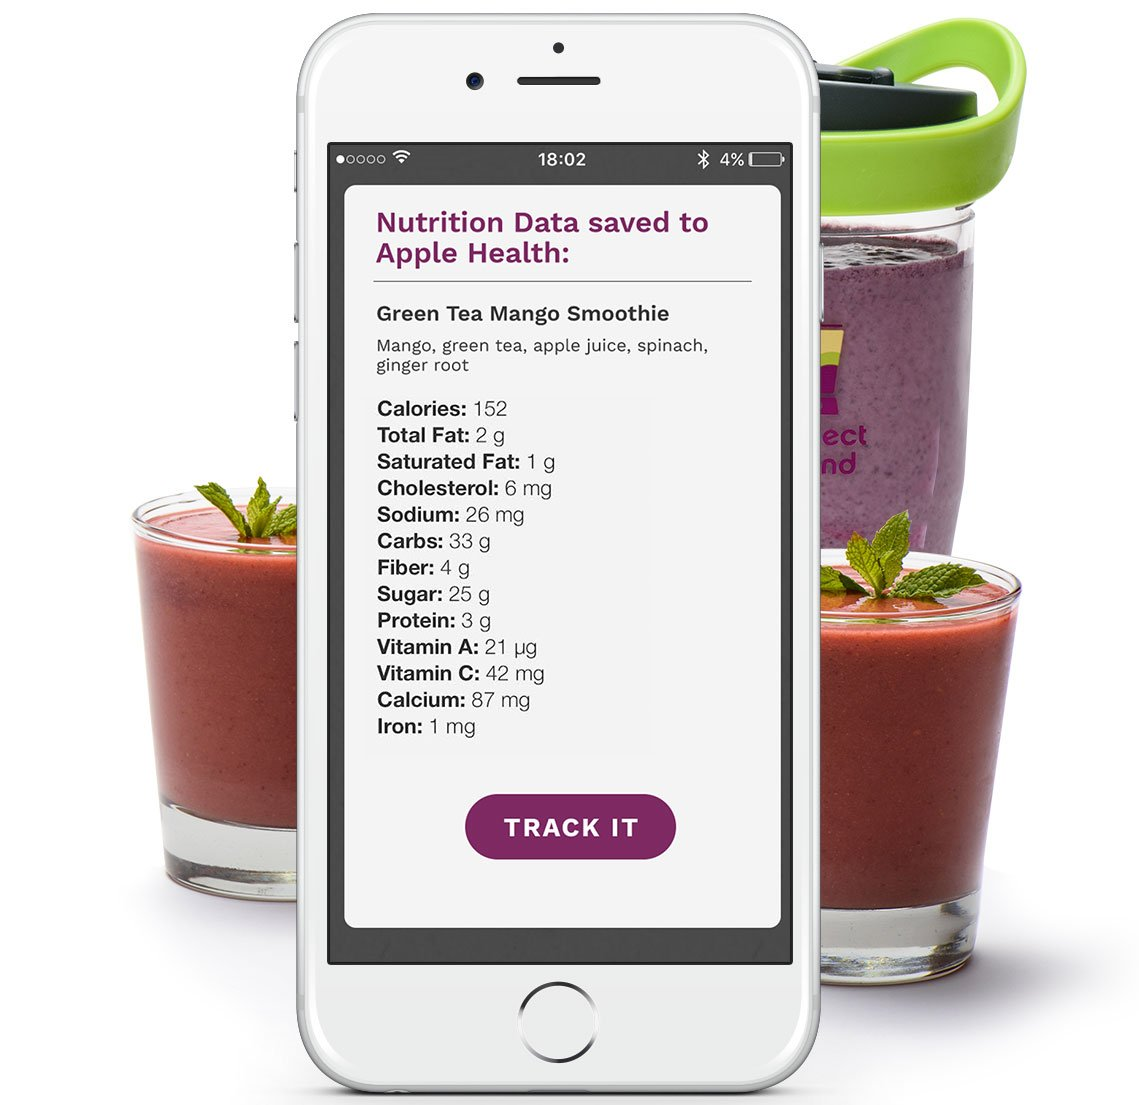 App/—Track nutrition and make delicious smoothies Perfect Blend 2.0 Smart Scale